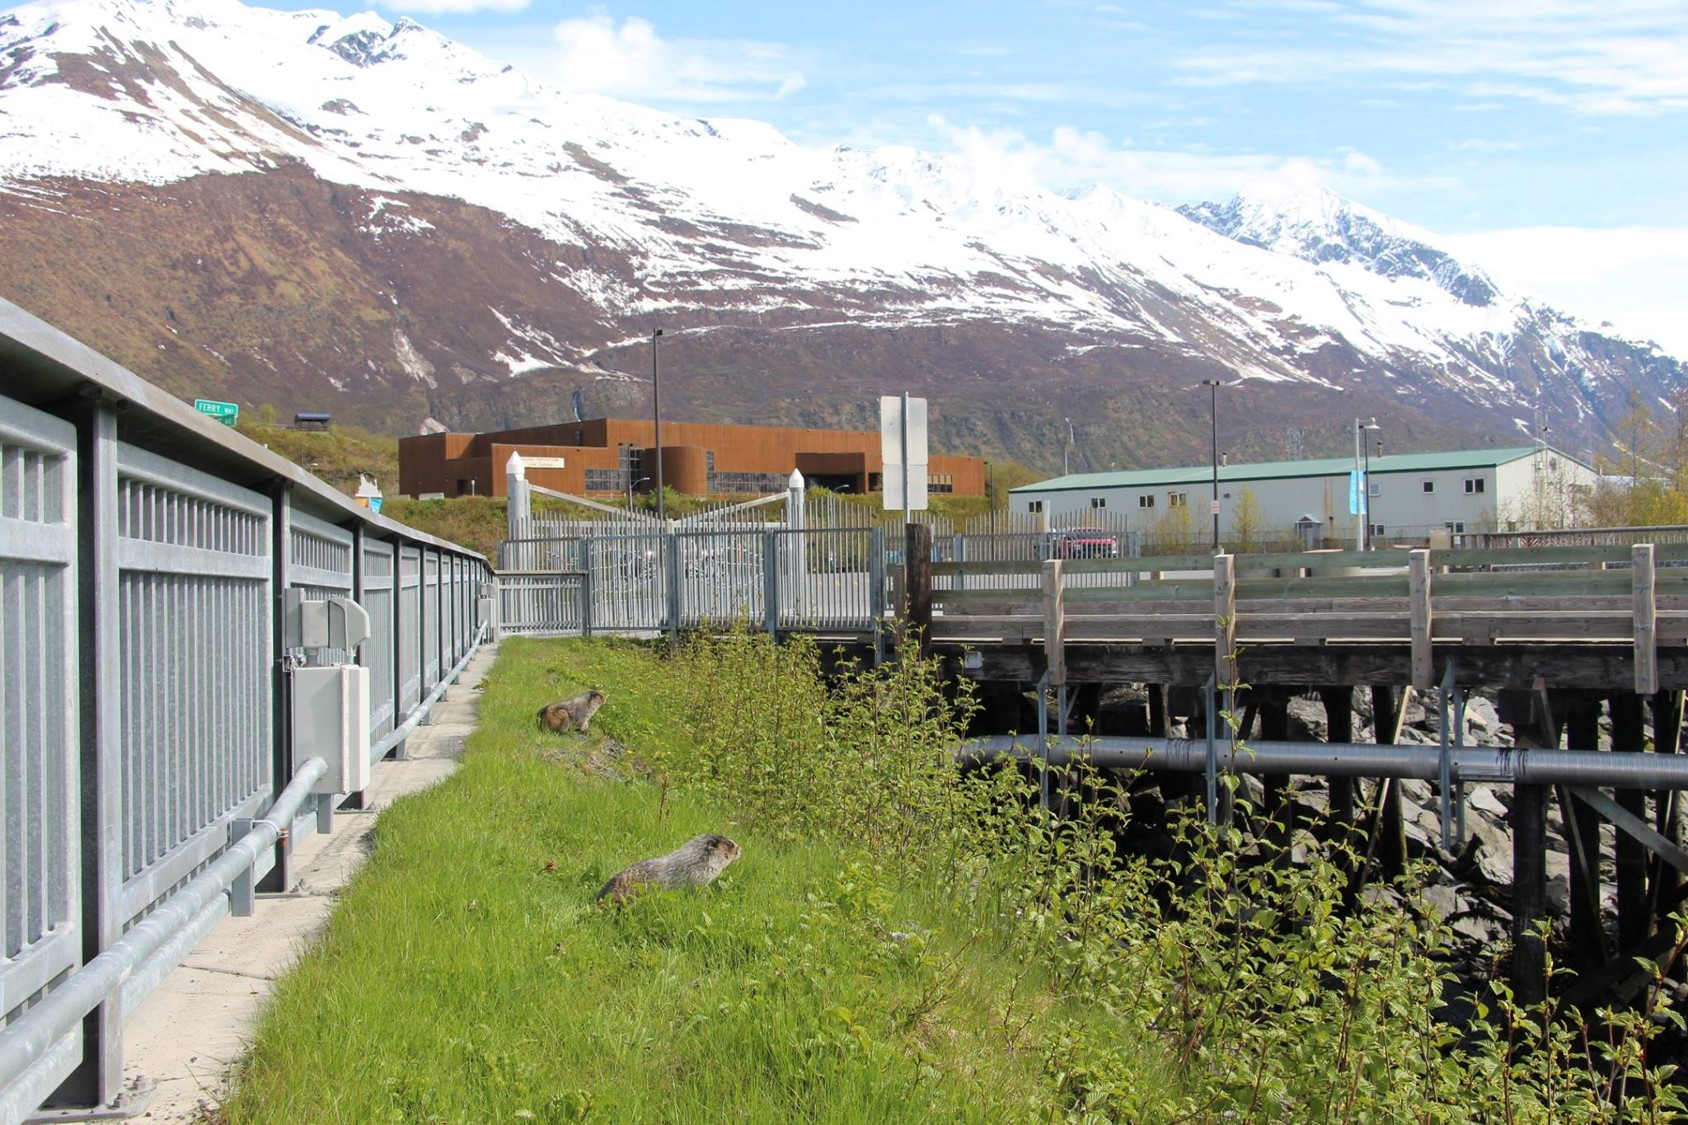 Marmots at the ferry terminal.